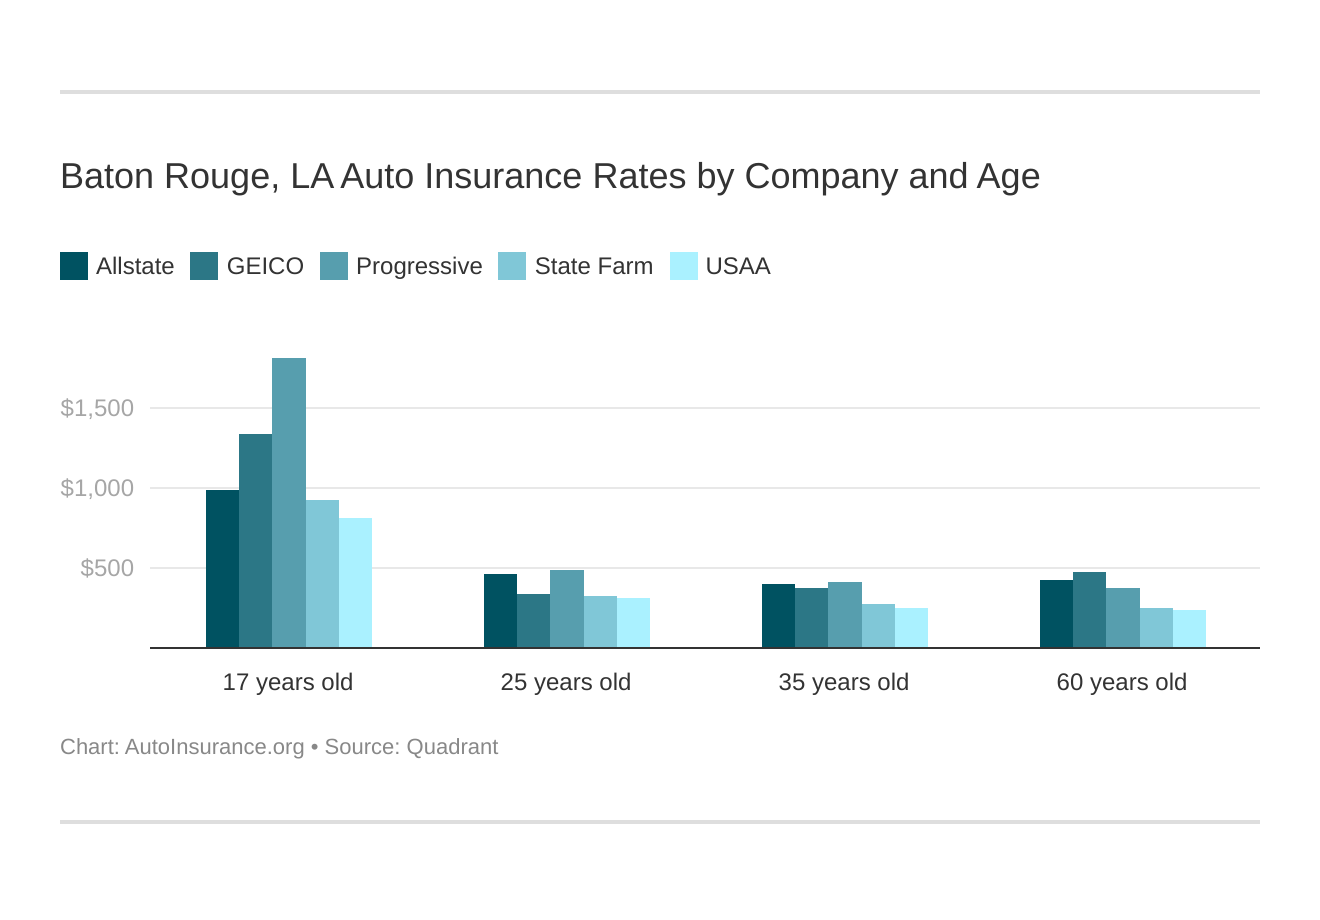 Baton Rouge, LA Auto Insurance Rates by Company and Age